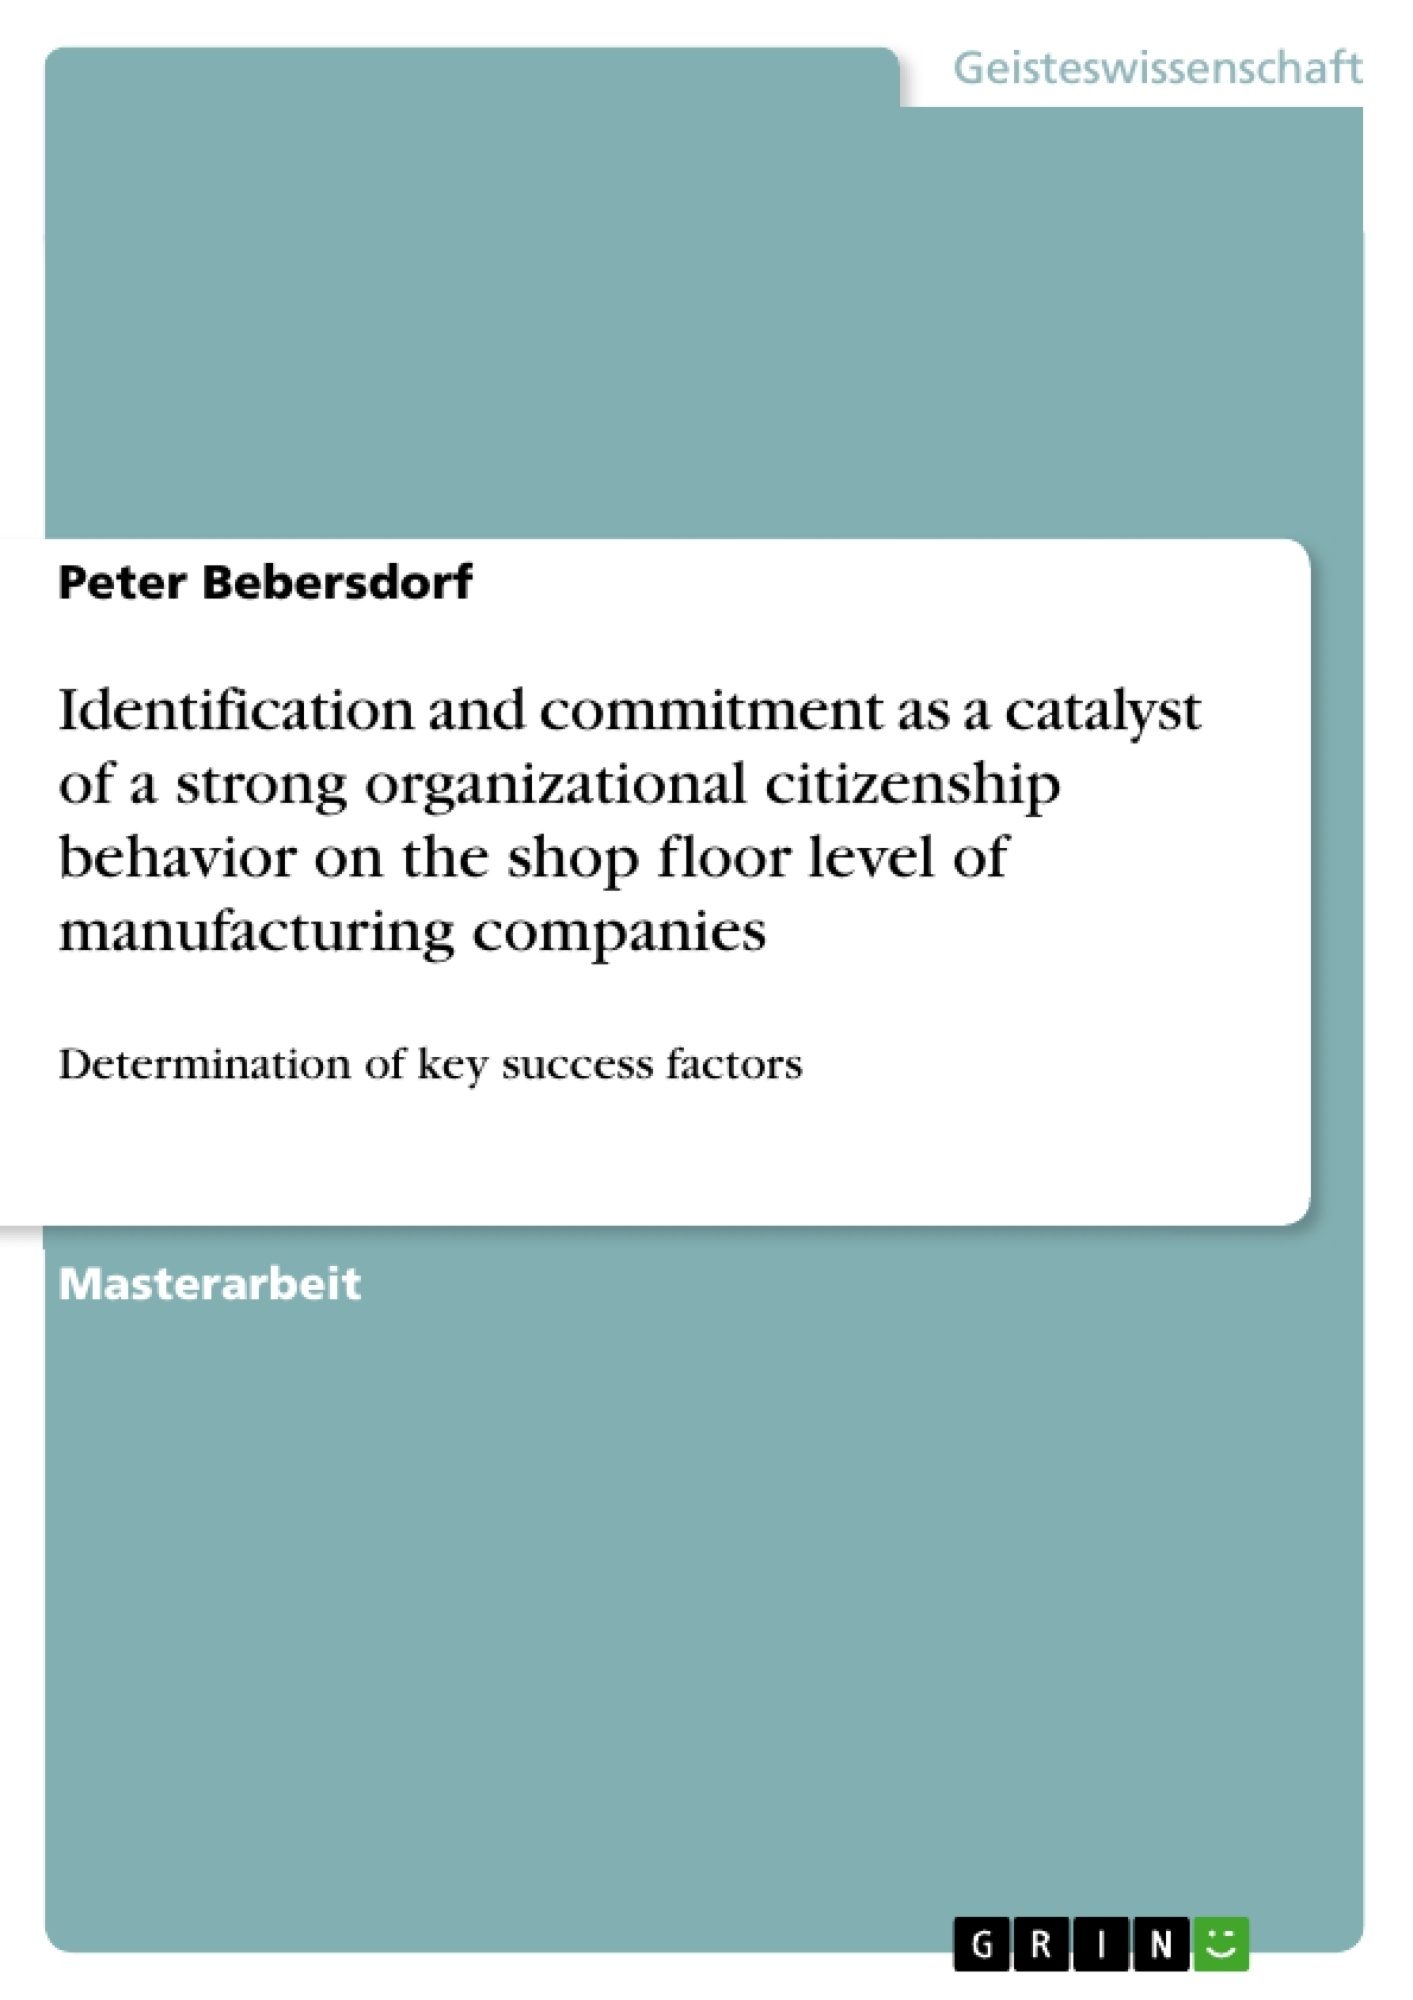 Titel: Identification and commitment as a catalyst of a strong organizational citizenship behavior on the shop floor level of manufacturing companies